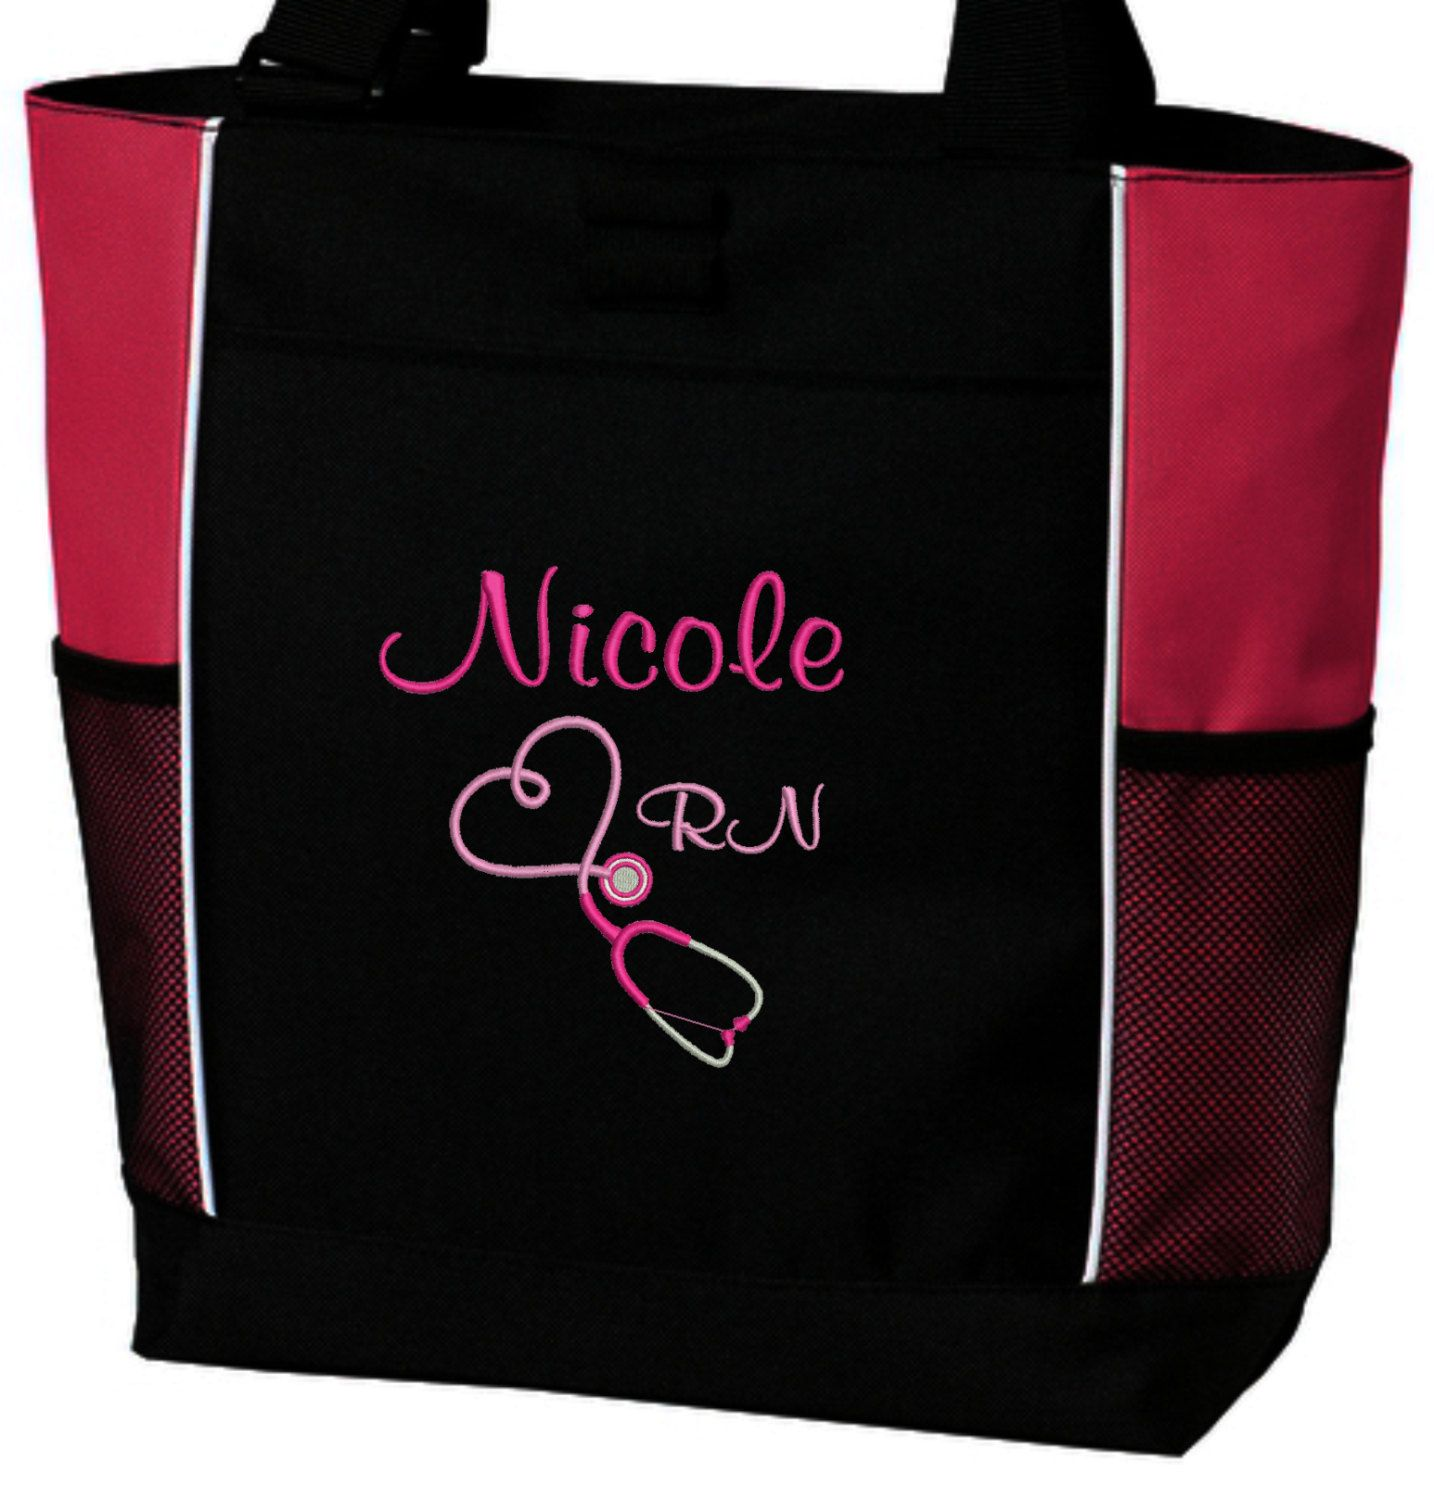 Tote Bag Personalized Nurse Student Rn Bsn Cna Lvn By Htscreations 30 00